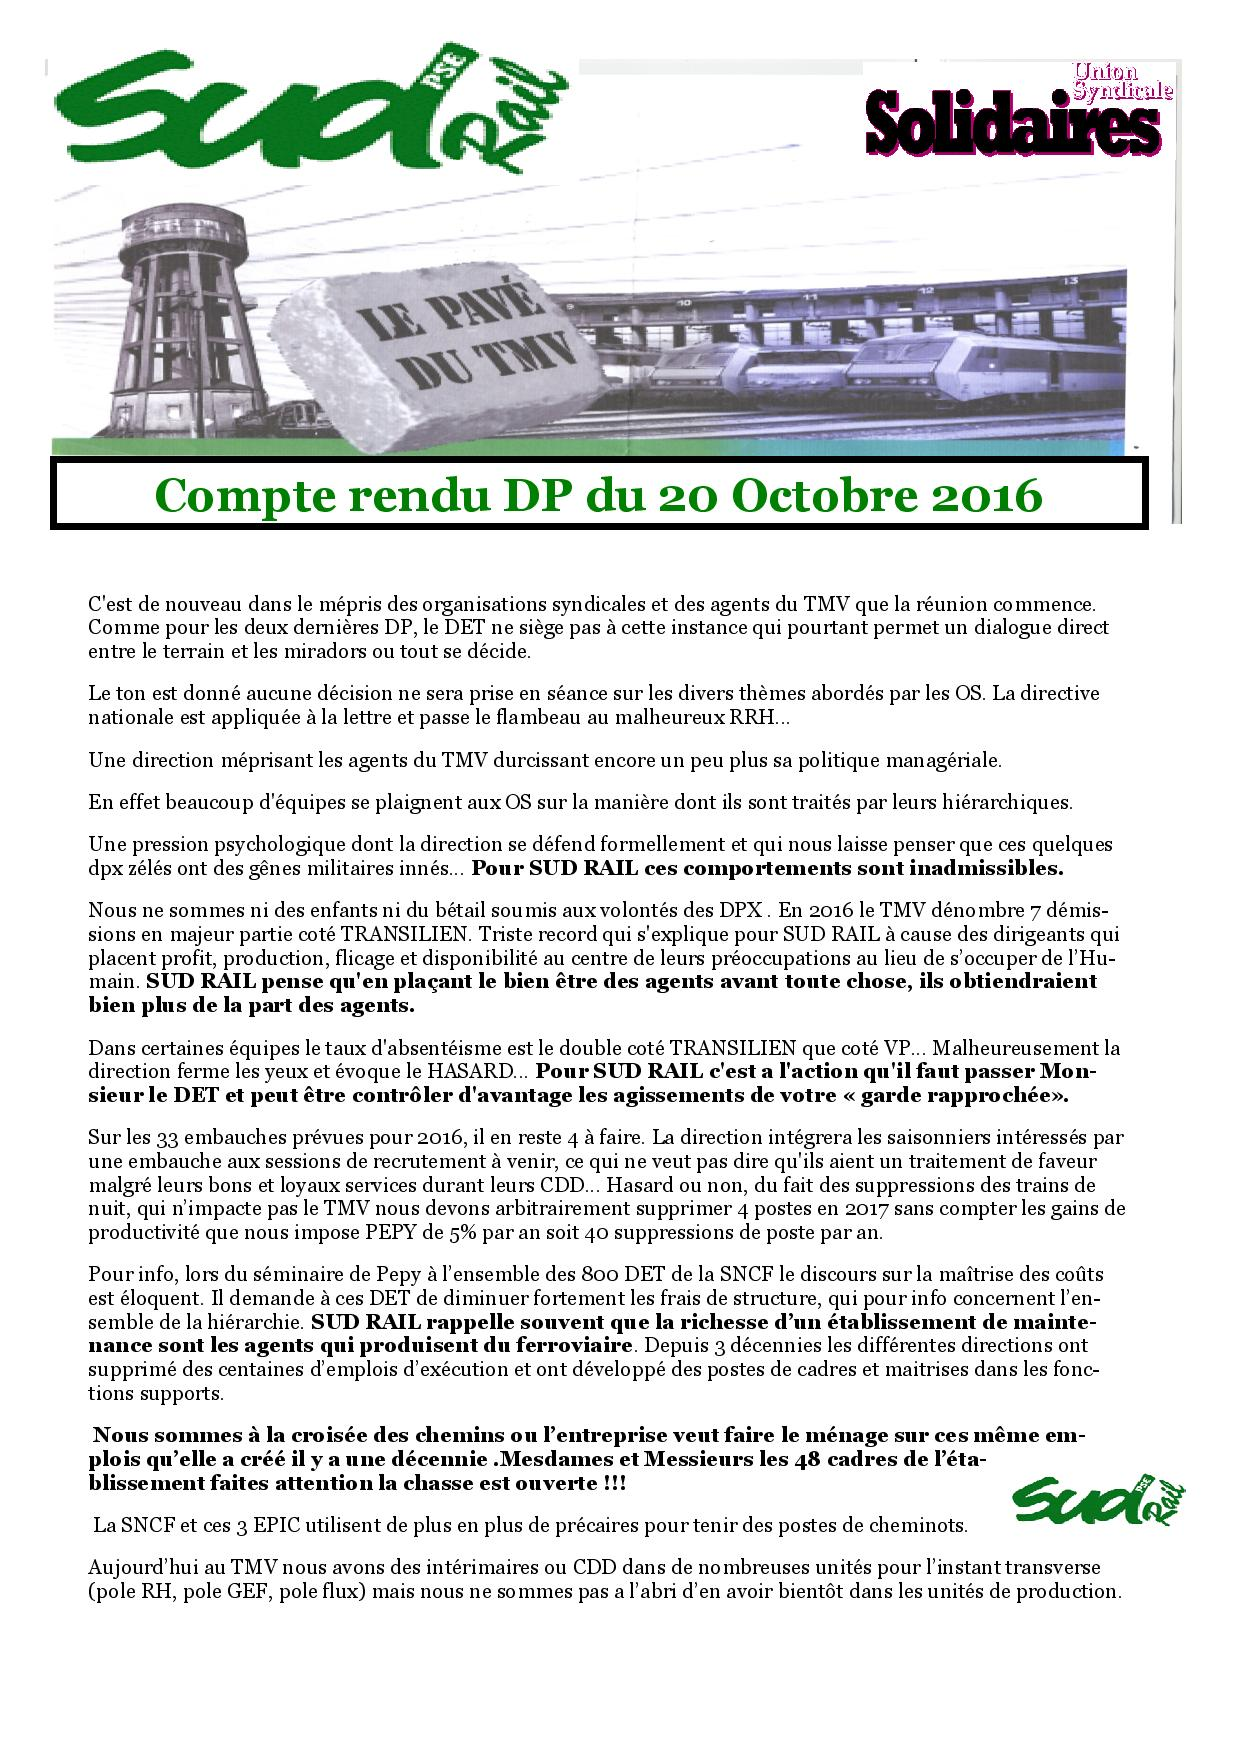 tmv-crdp-10-2016-page-001